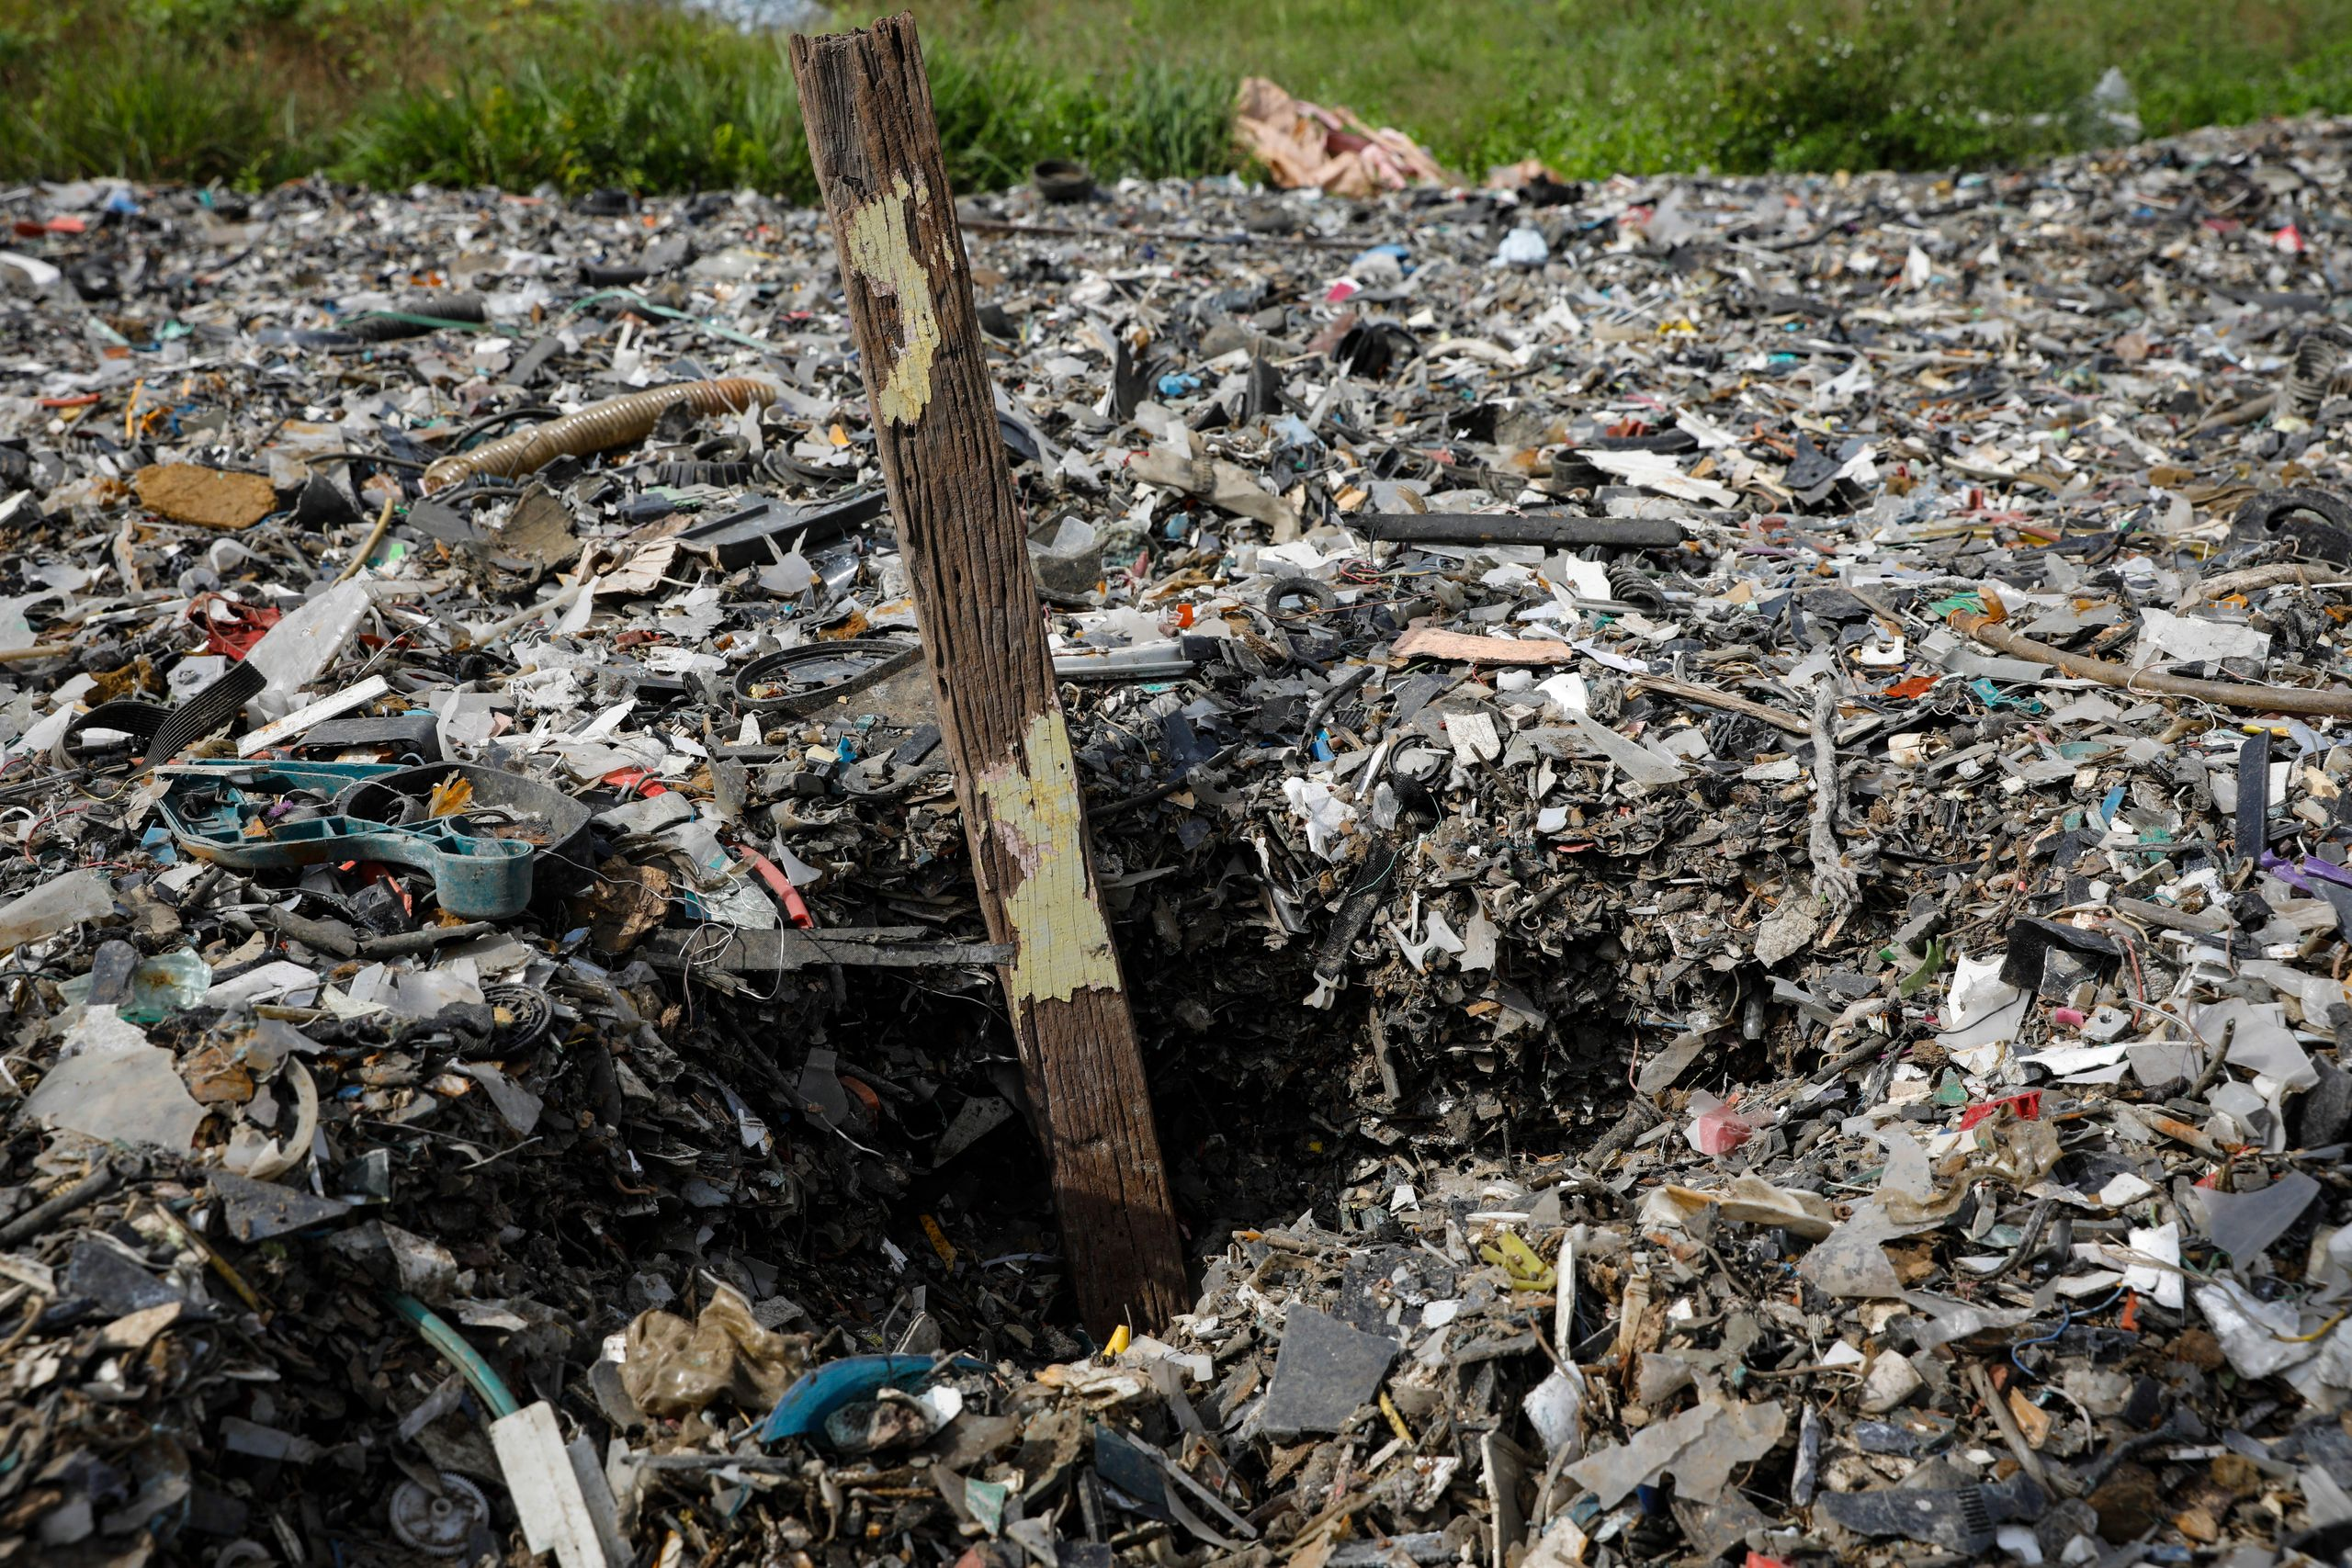 Plastics piles up at an illegal dumping site inside a palm oil estate in Kuala Langat on Feb. 2, 2019.